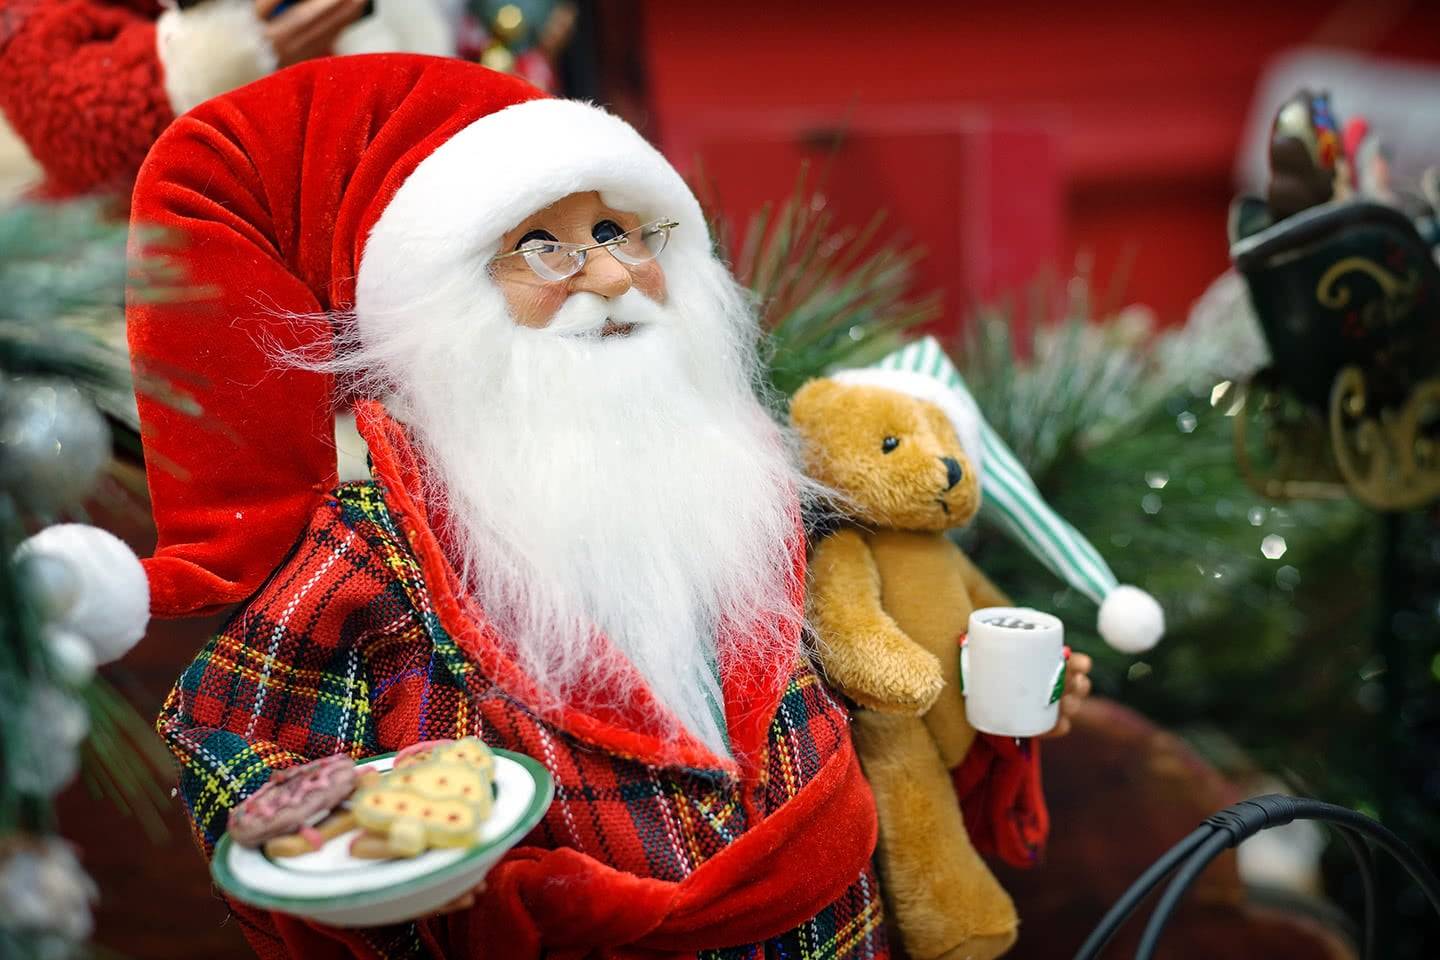 Twas the Night Before Christmas as Santa arrives with toys for the kids and cookies and milk for him